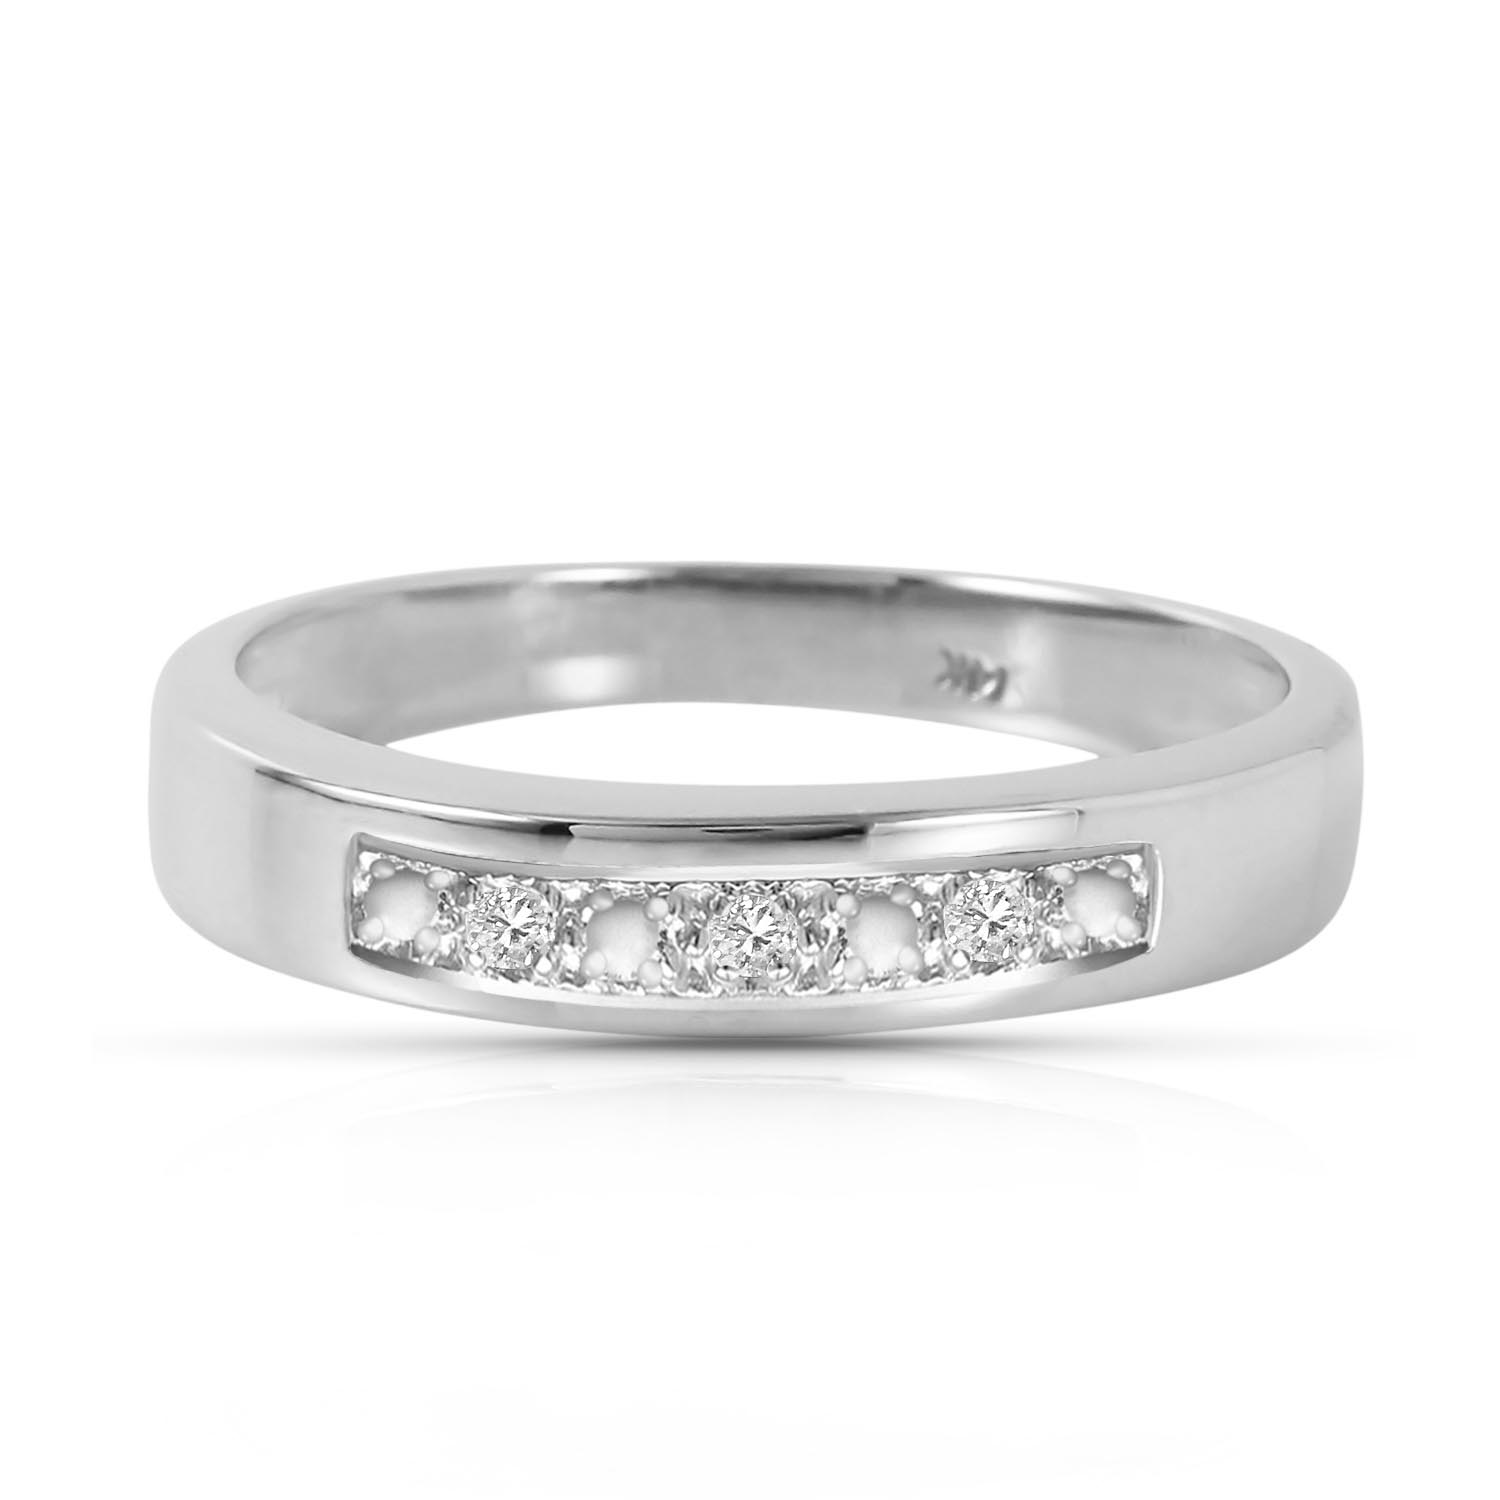 Round Cut Diamond Ring 0.02 ctw in 9ct White Gold